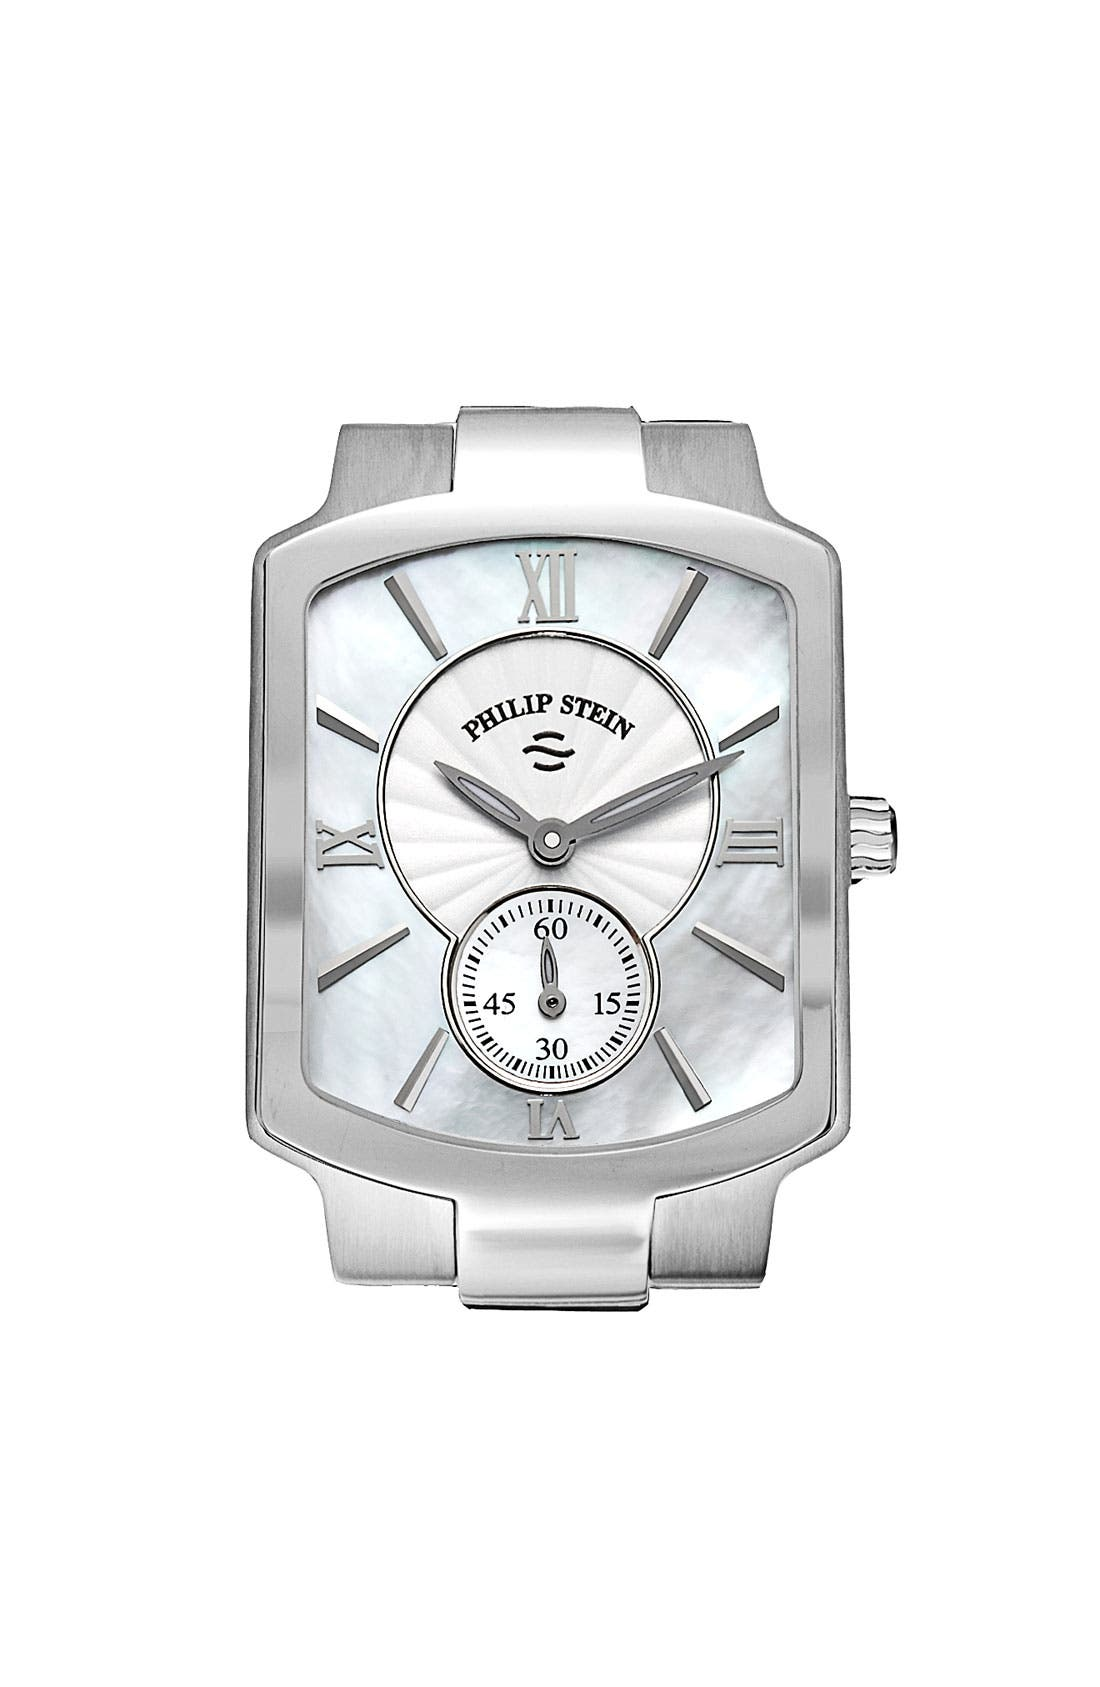 Main Image - Philip Stein® 'Classic' Small Watch Case